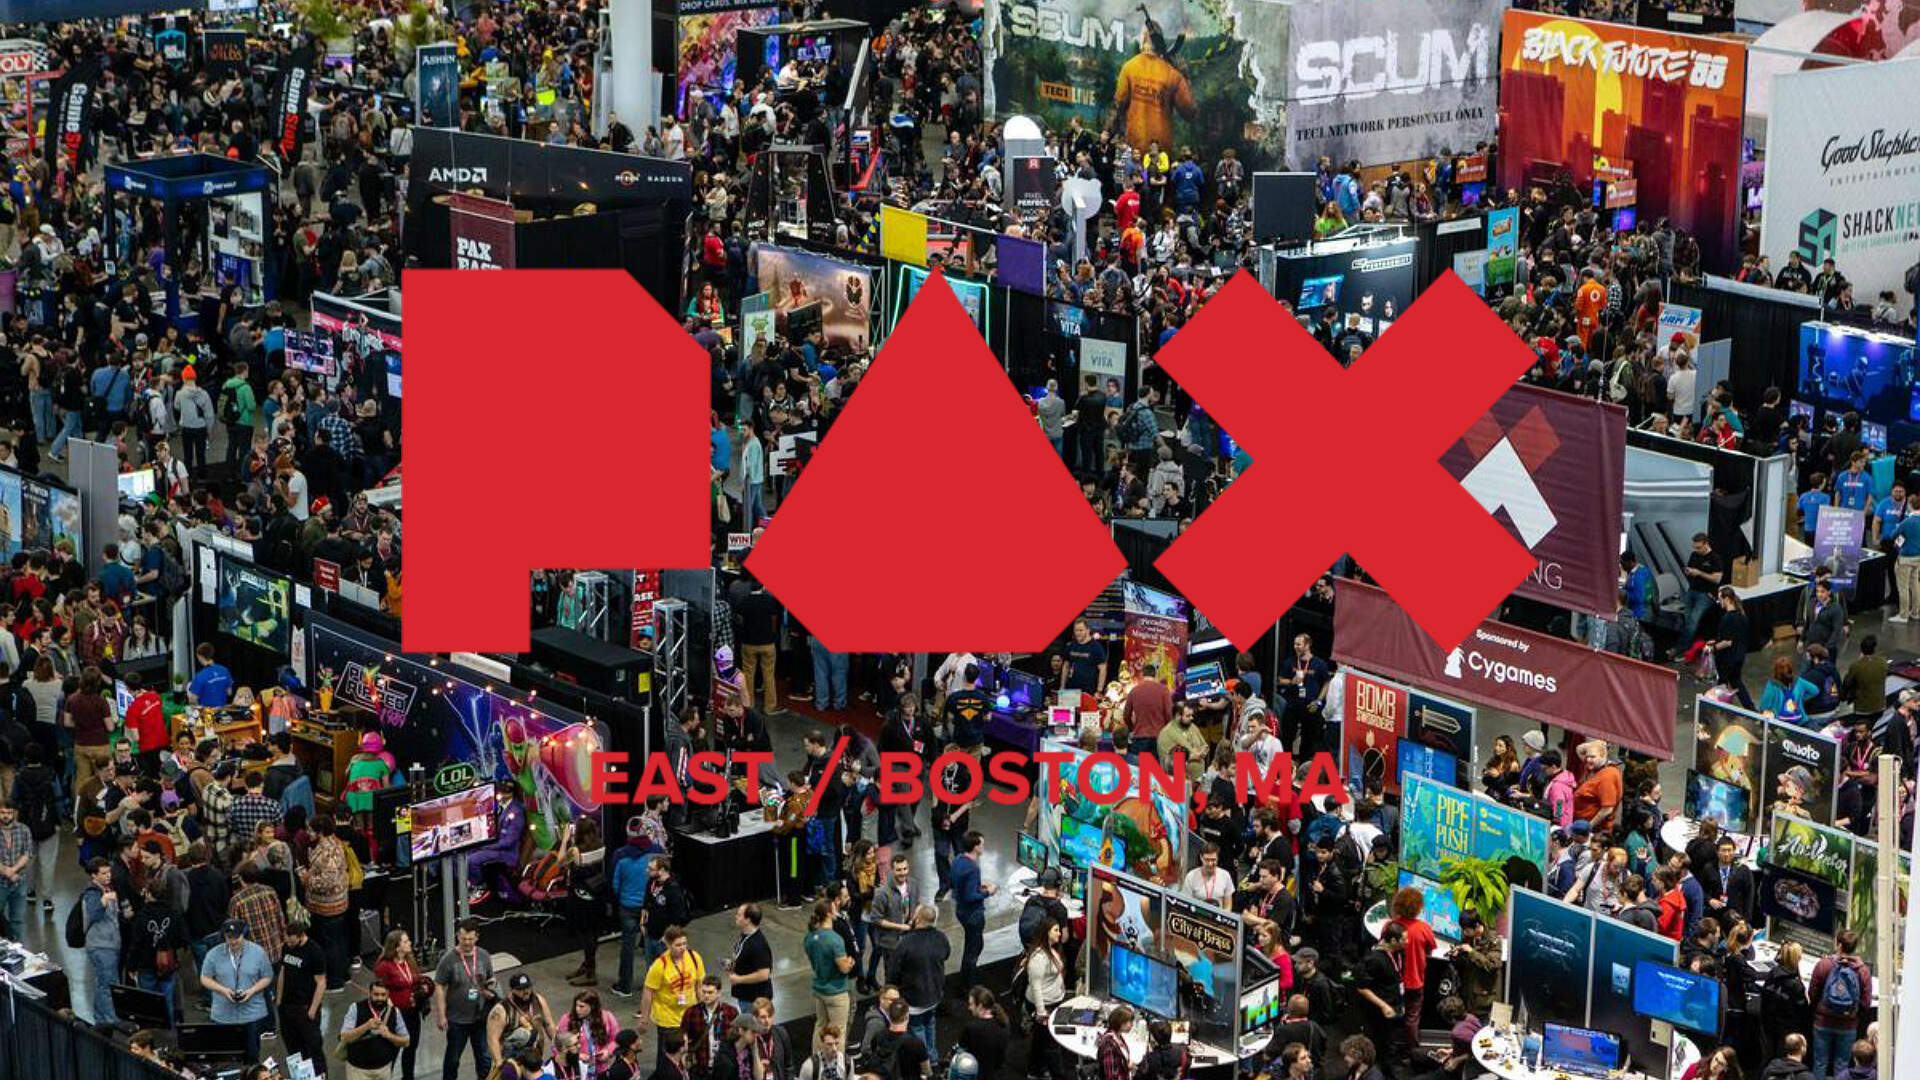 PAX East 2019 Wrap-Up: From Borderlands 3 to Cyber Shadow, It Was a Busy Weekend for Games